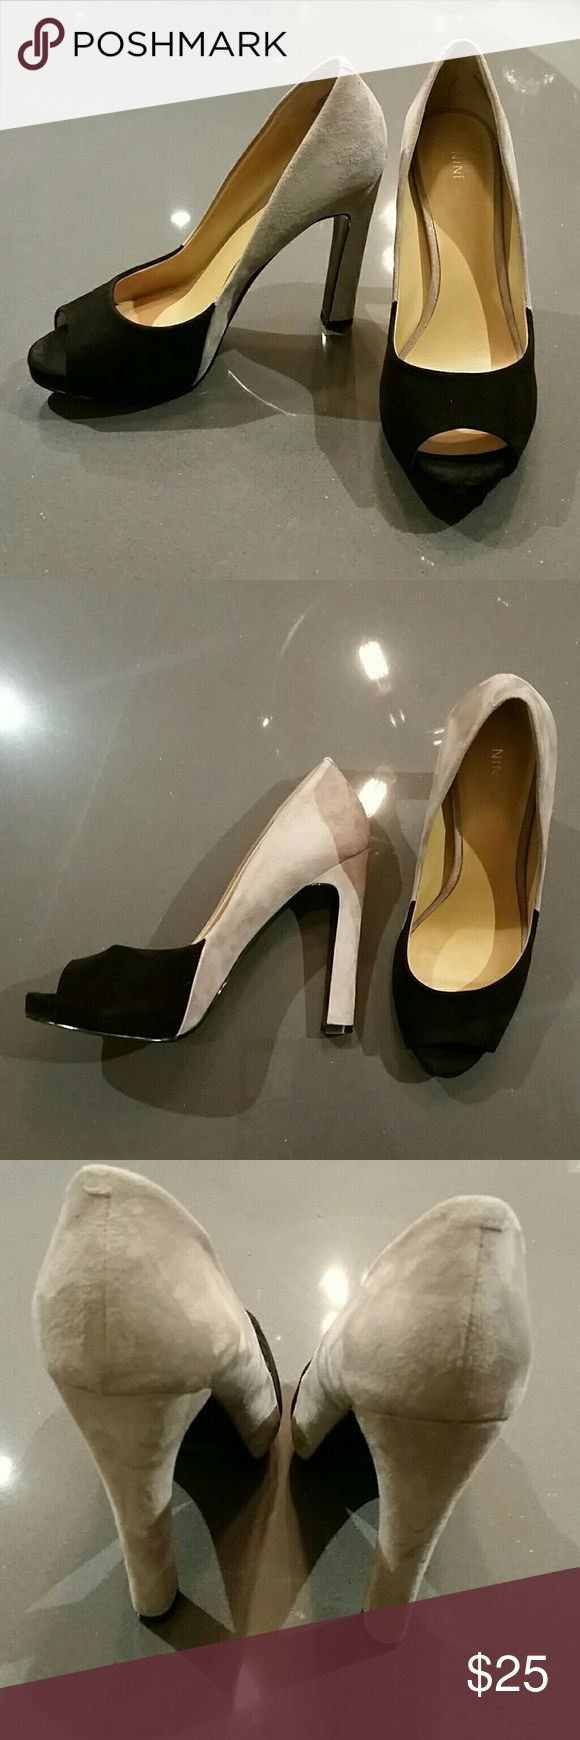 Nine West peep toe pumps Grey/black suede platform pumps.  Like new condition, maybe wore these twice. Nine West Shoes